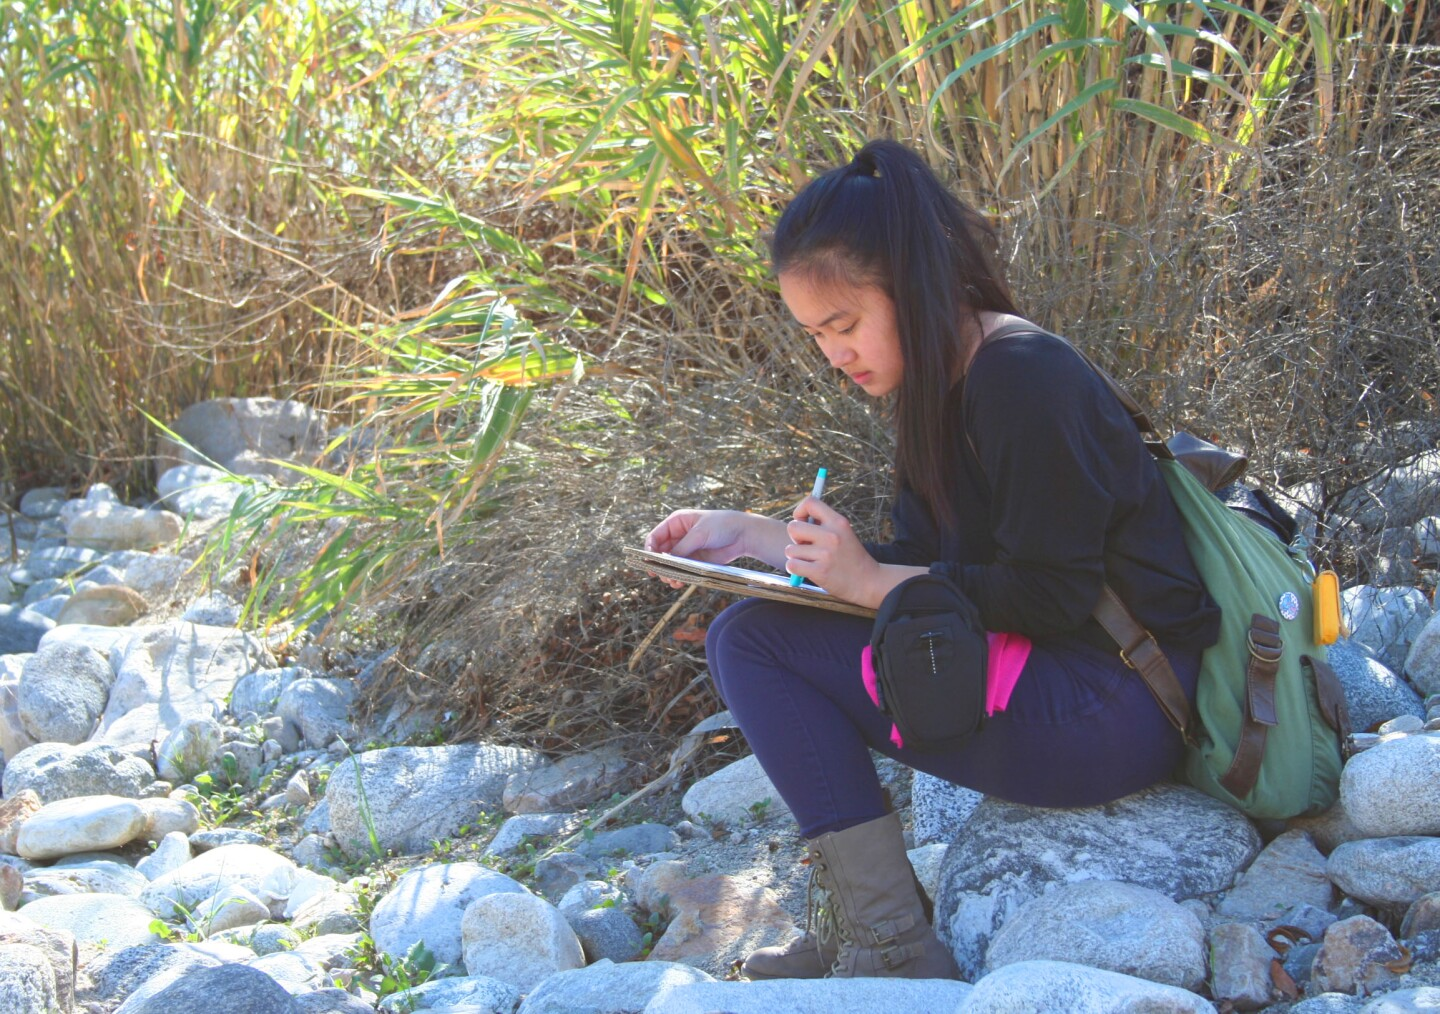 An L.A. River School student takes advantage of a quiet moment to draw